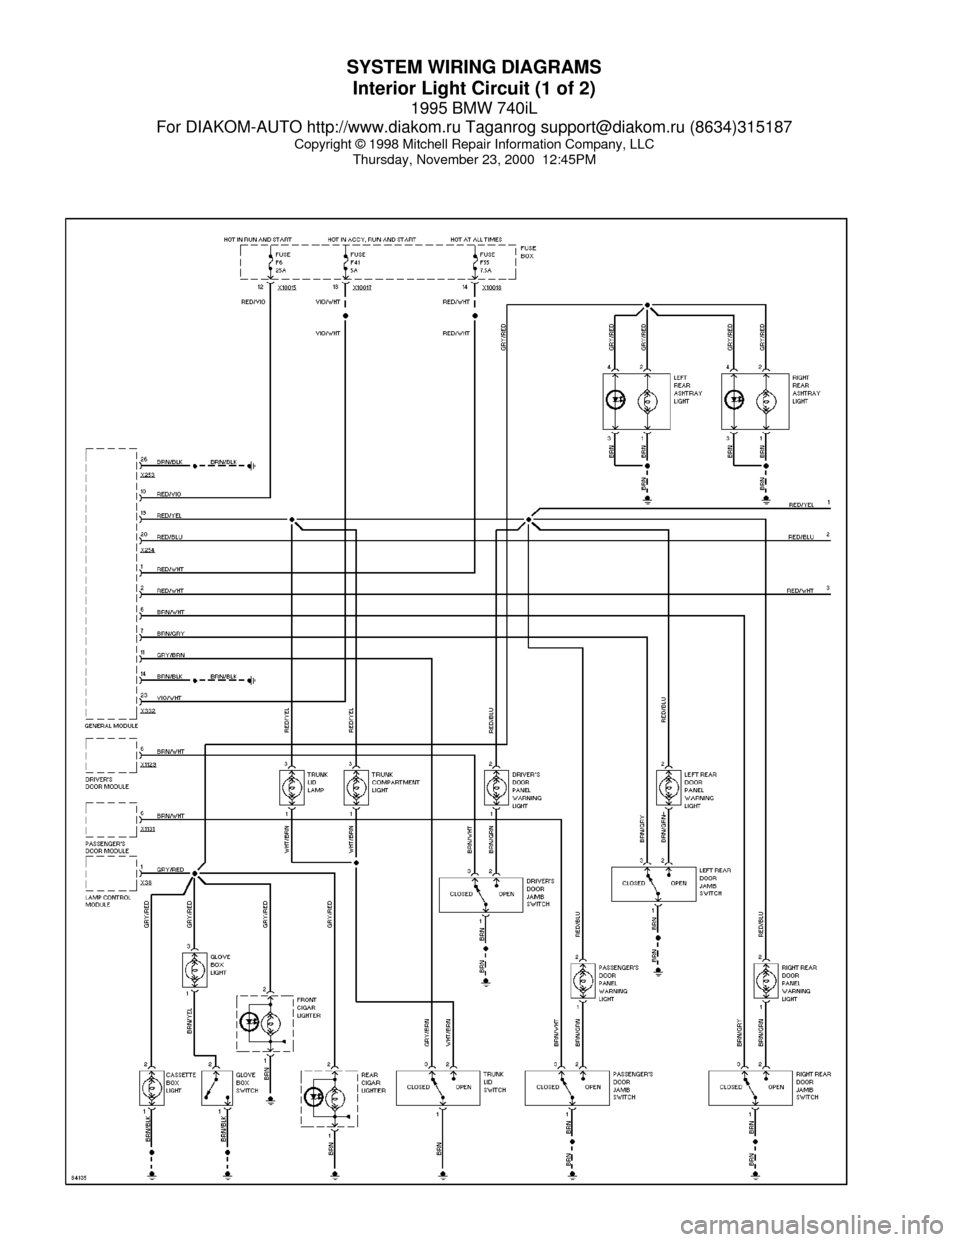 Bmw E38 Amplifier Wiring Diagram Manual Another Blog About 740il 1995 System Diagrams